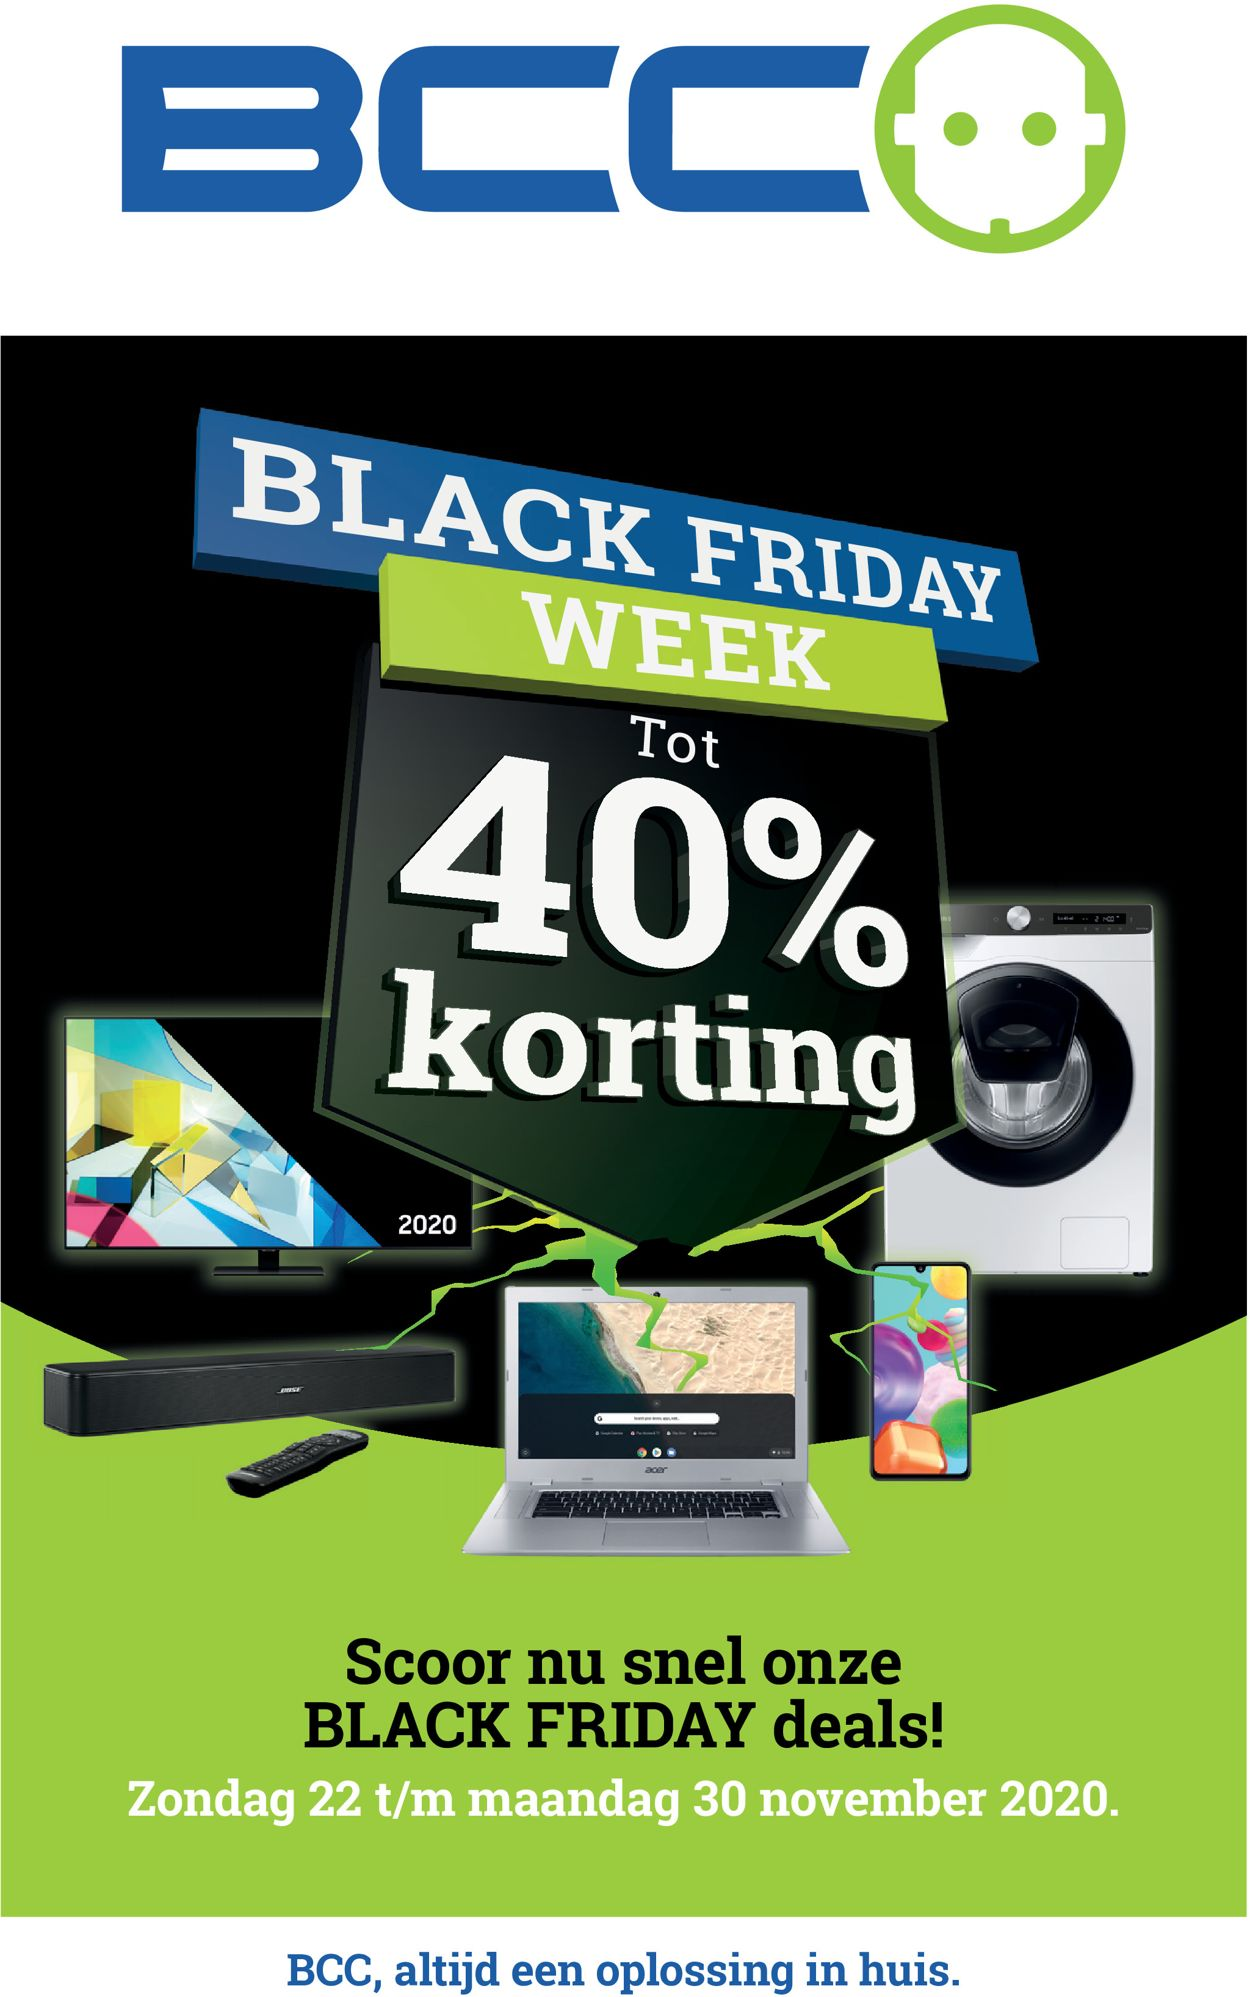 Catalogus van BCC Black Friday 2020 van 22.11.2020